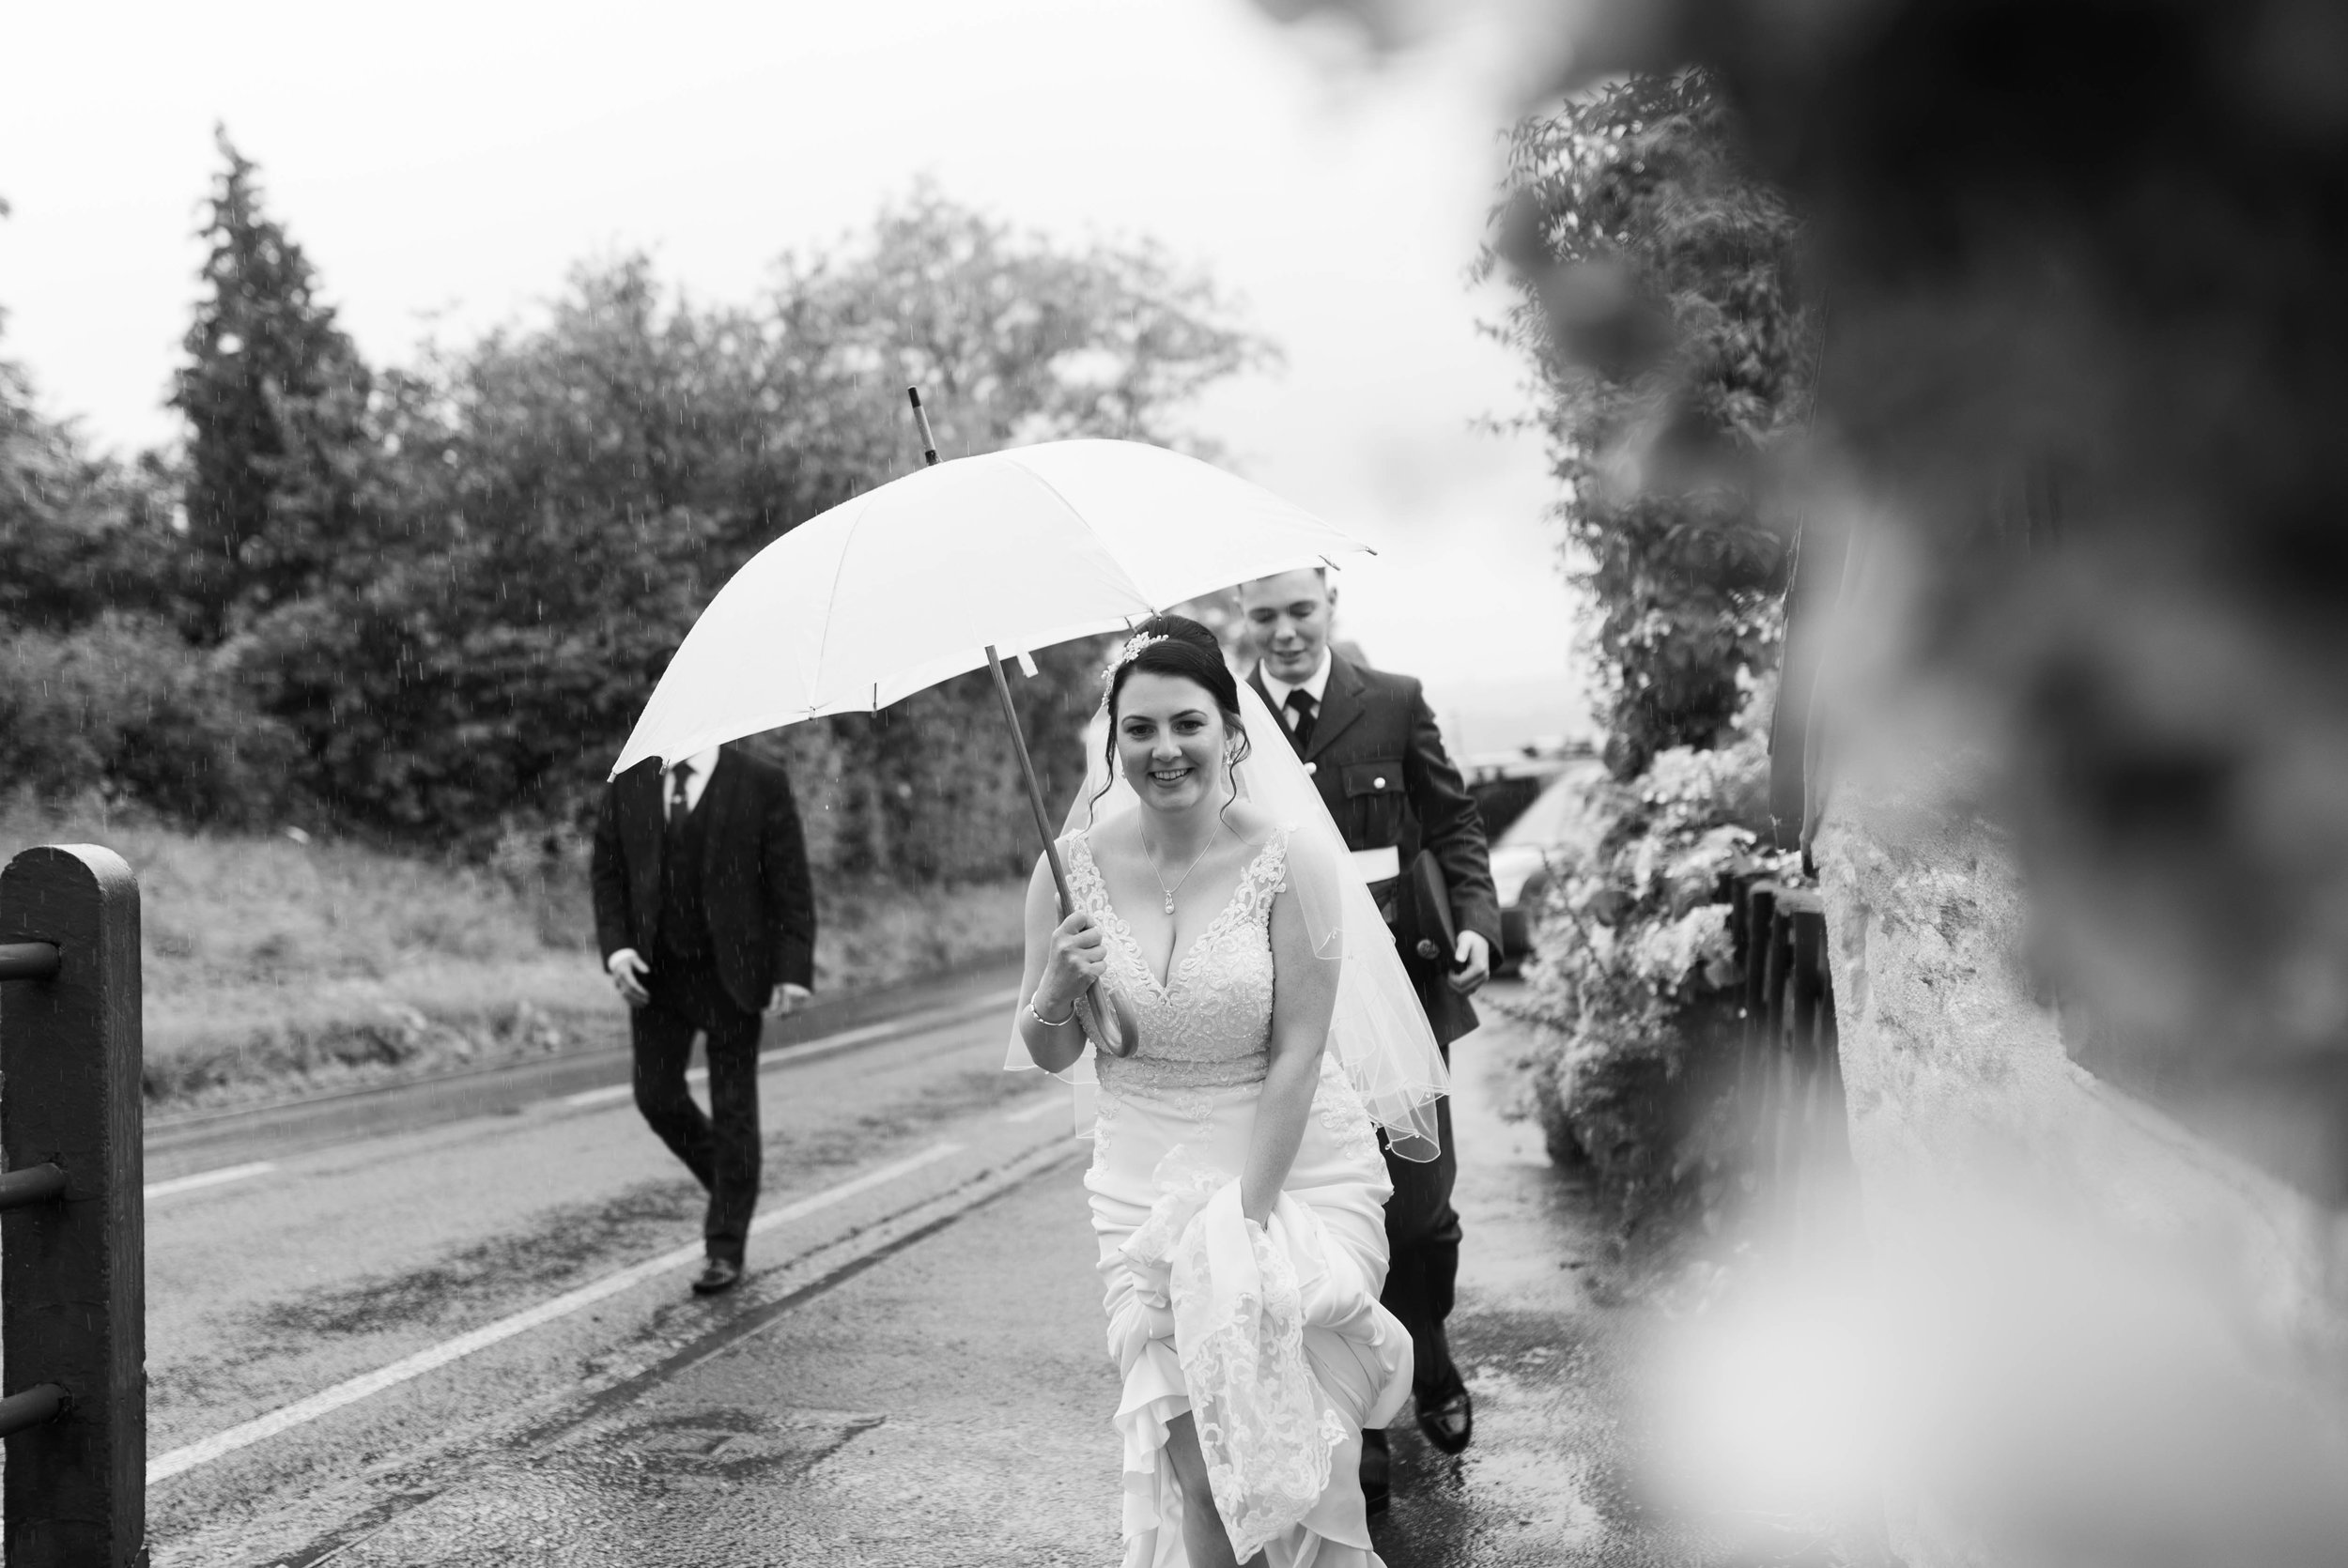 LEA-COOPER-PHOTOGRAPHY-WEDDING-PHOTOGRAPHY-THOMAS-ROBINSON-BUILDING-STOURBRIDGE-YE-OLDE-PUNCHBOWL-INN-BRIDGNORTH-WOLVERHAMPTON-WILLENHALL-UK-WEDDING-PHOTOGRAPHER-21.JPG